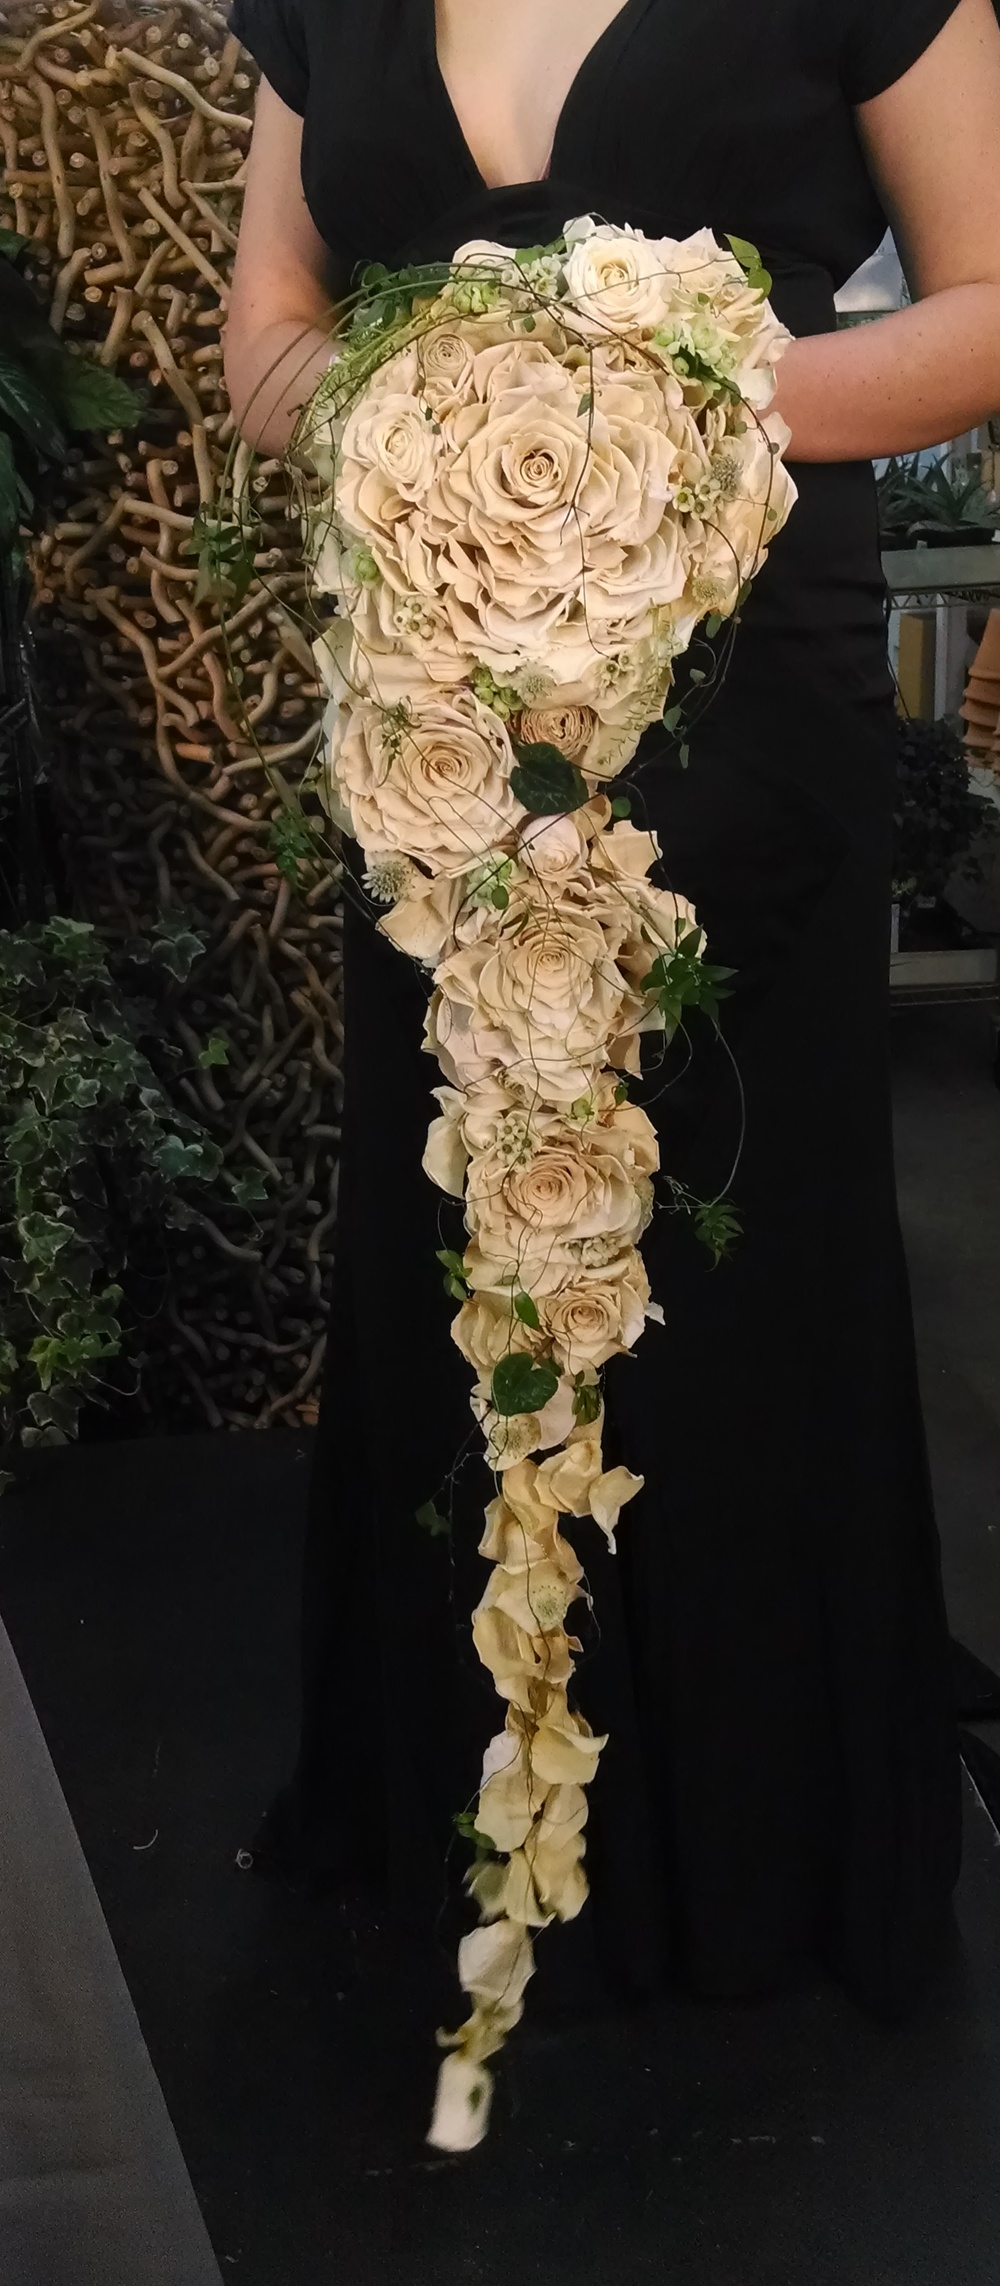 My personal favorite.  This is made out of preserved roses!  A super lightweight, absolutely stunning bouquet that will last forever.  I hope I get the chance to make one soon.